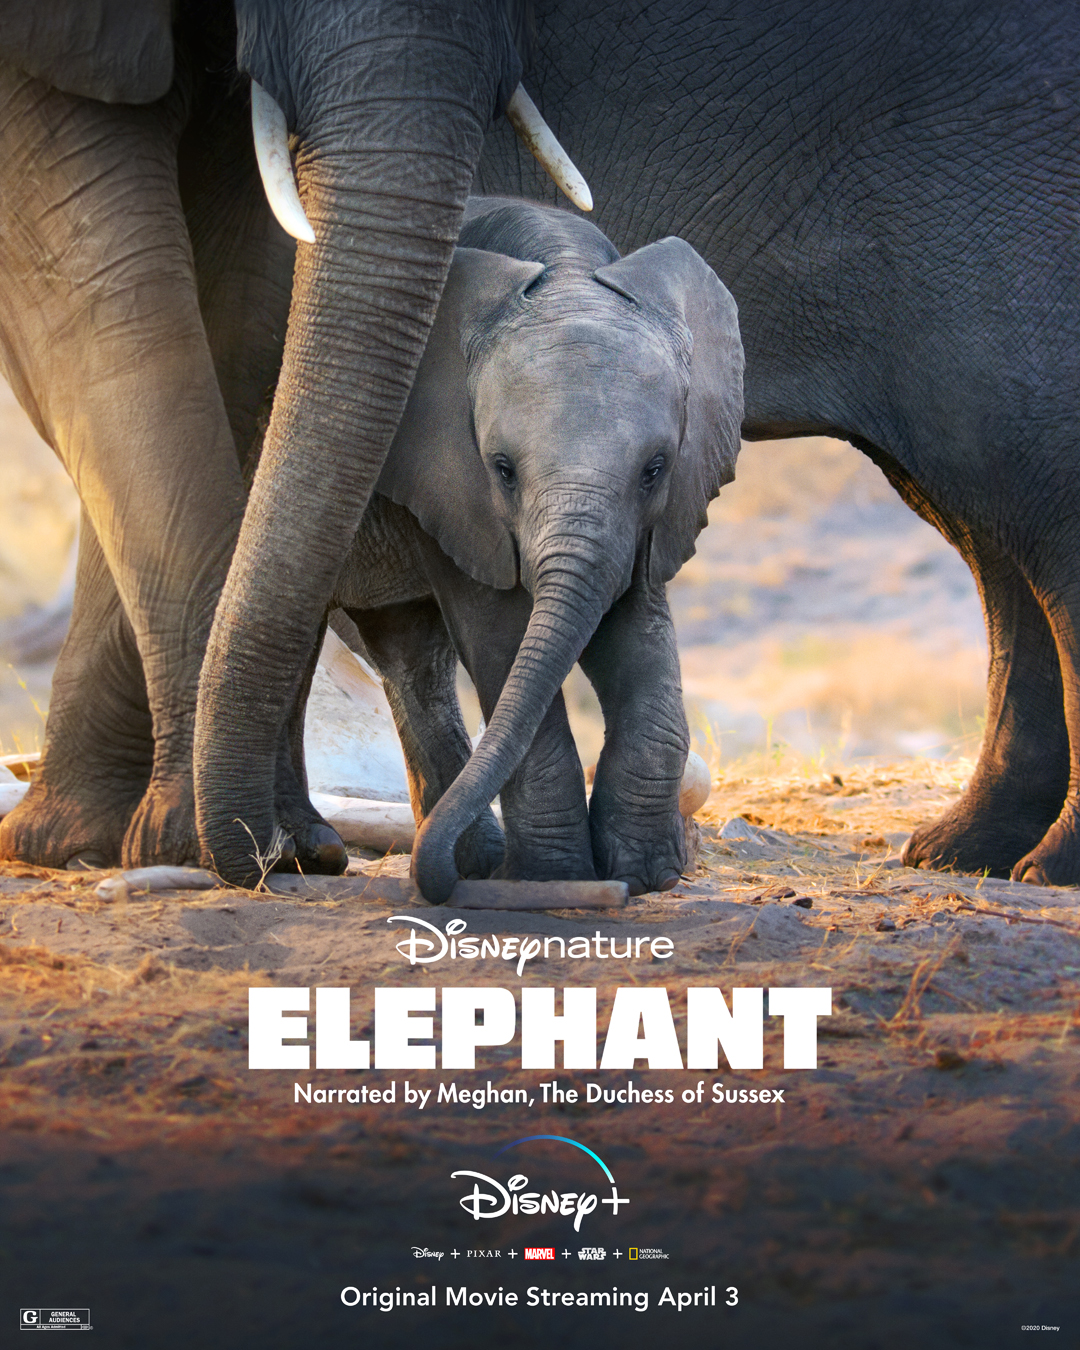 Disney + Honors Earth Month With New DisneyNature Films Narrated By Meghan Markle